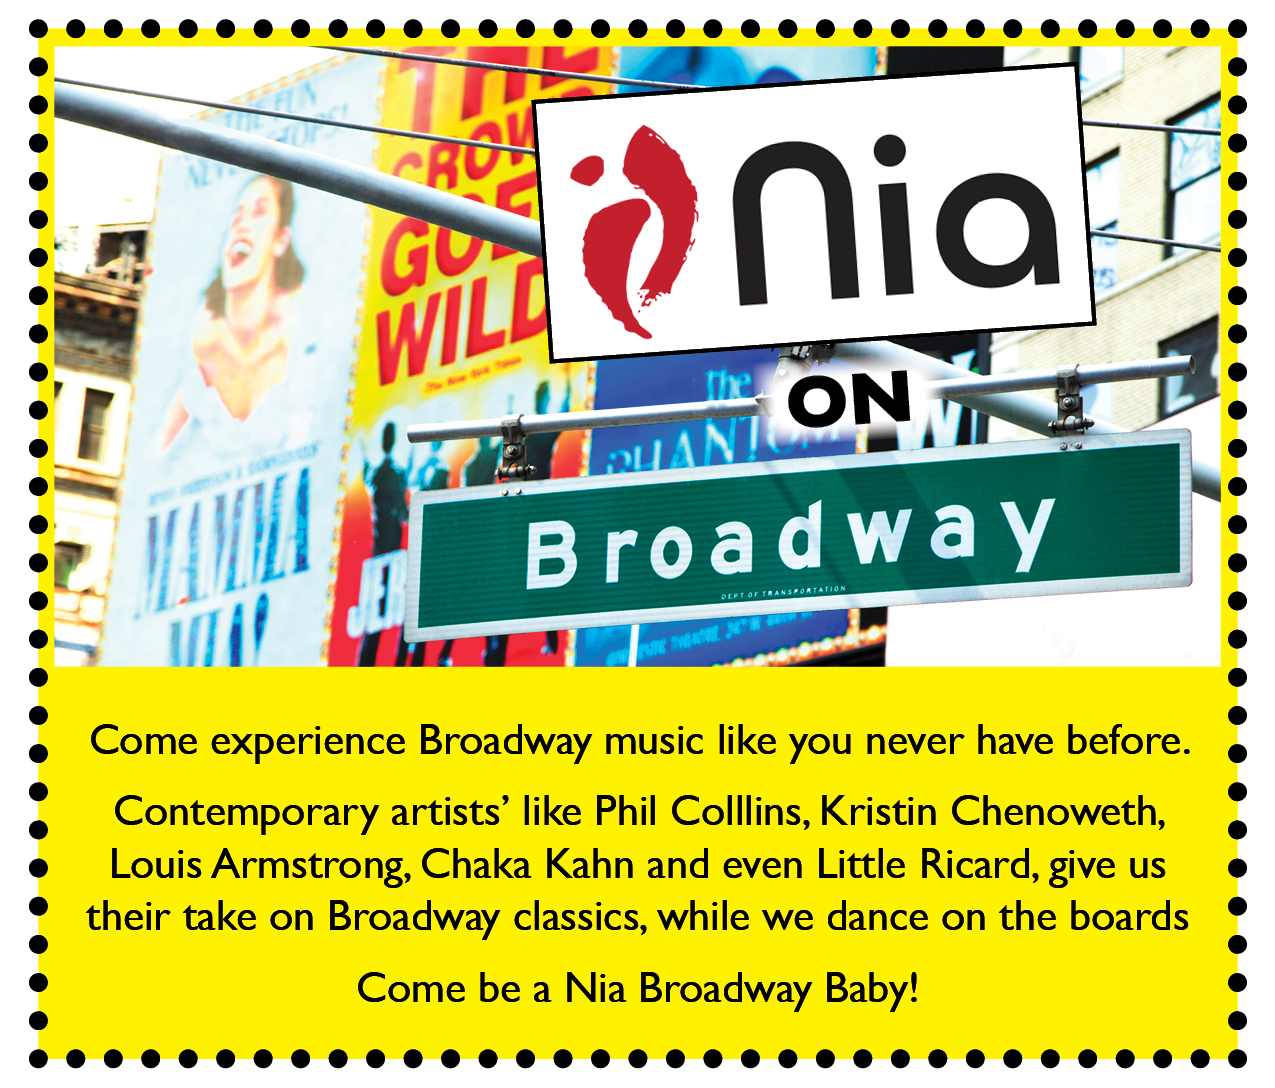 nia flyer shout out broadway